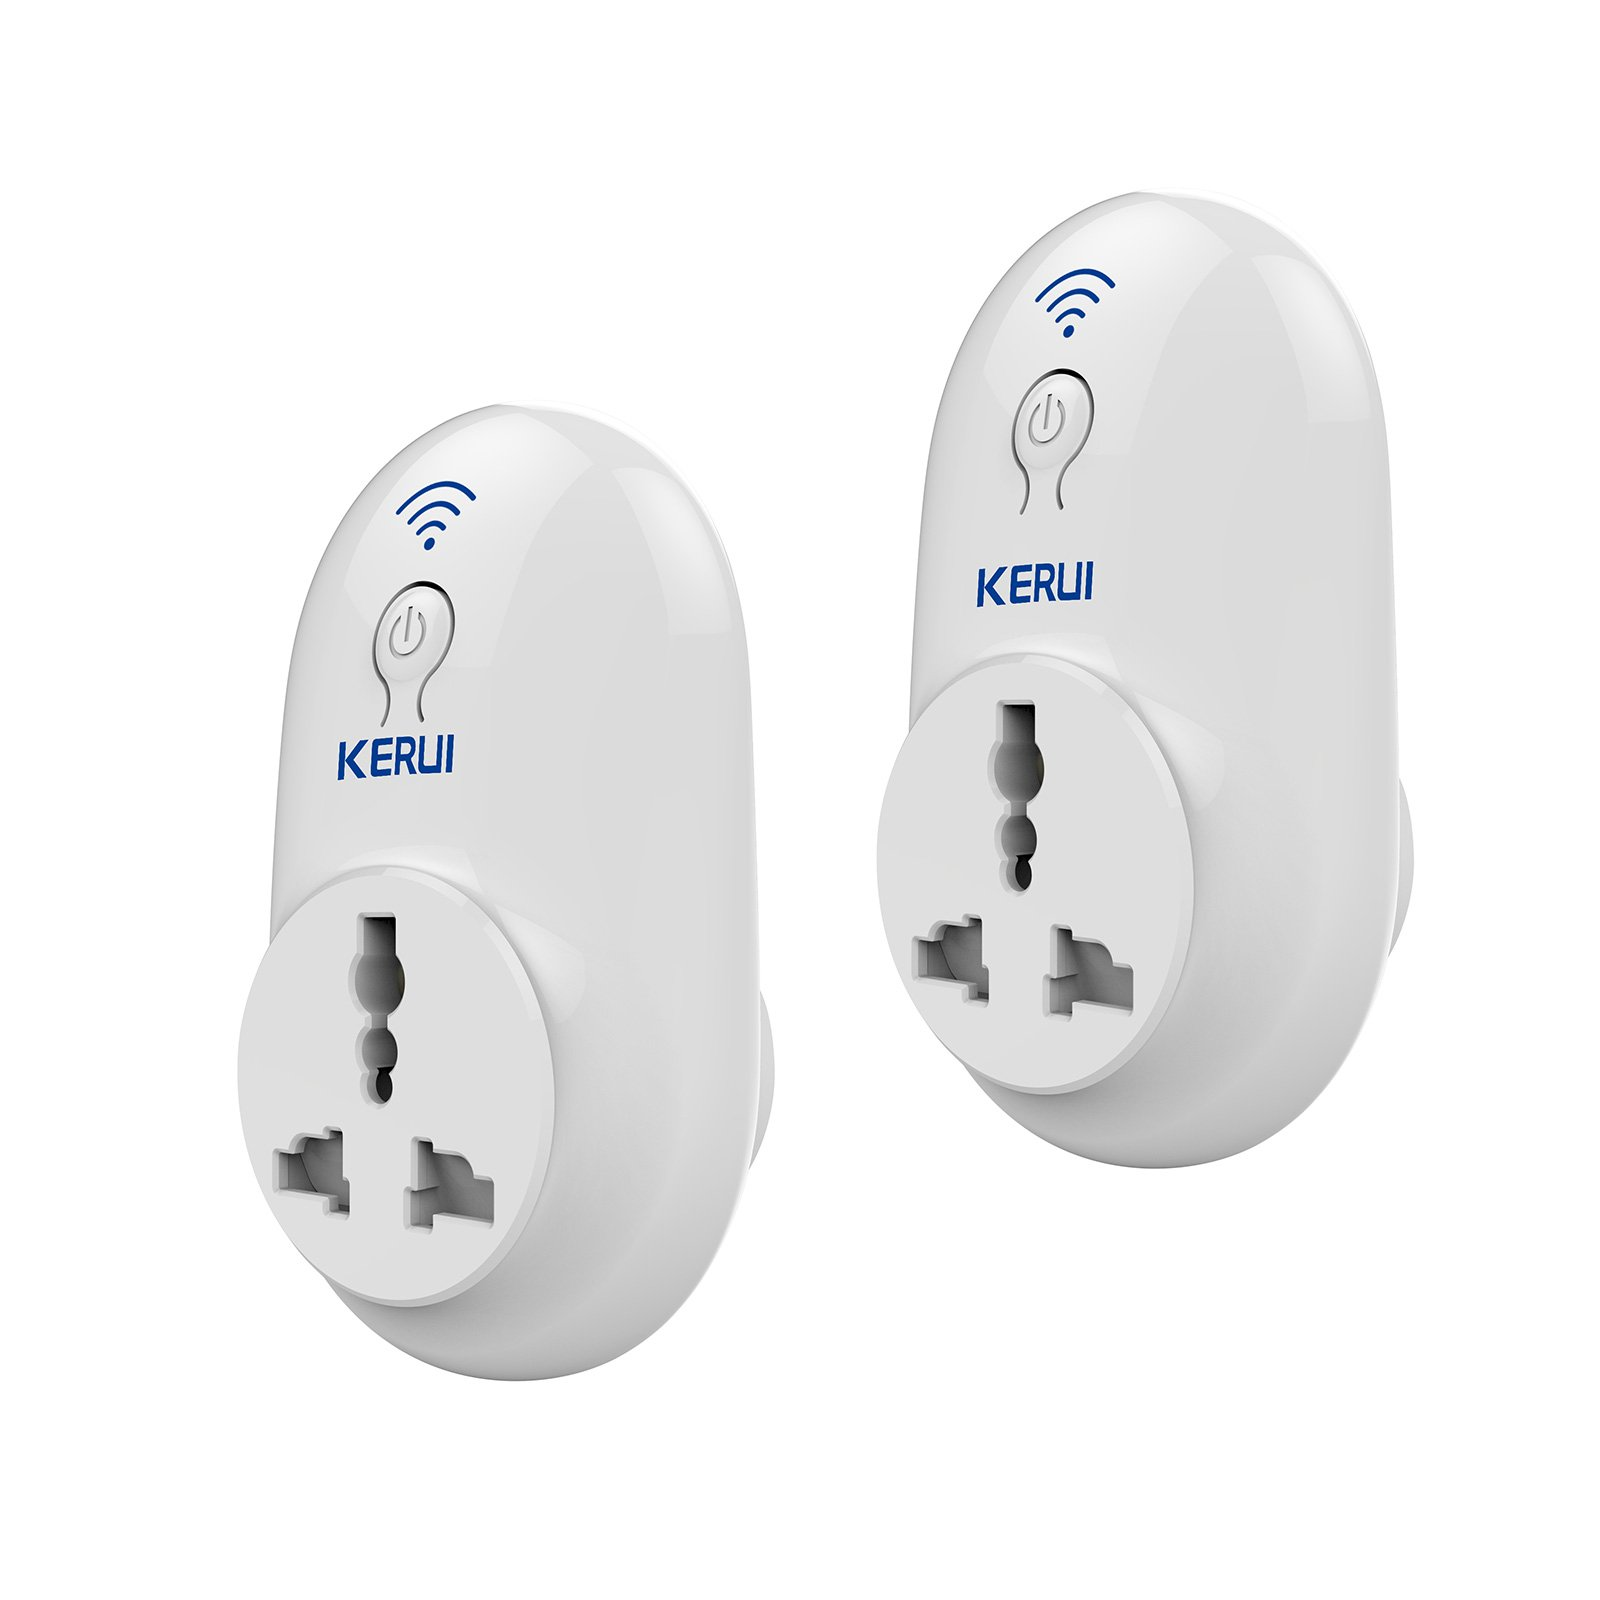 KERUI S72 Wireless WIFI Smart Plug -Timing Socket Outlet APP Remote Control Devices from Anywhere for Home/House Apartment,2 Pack by KERUI